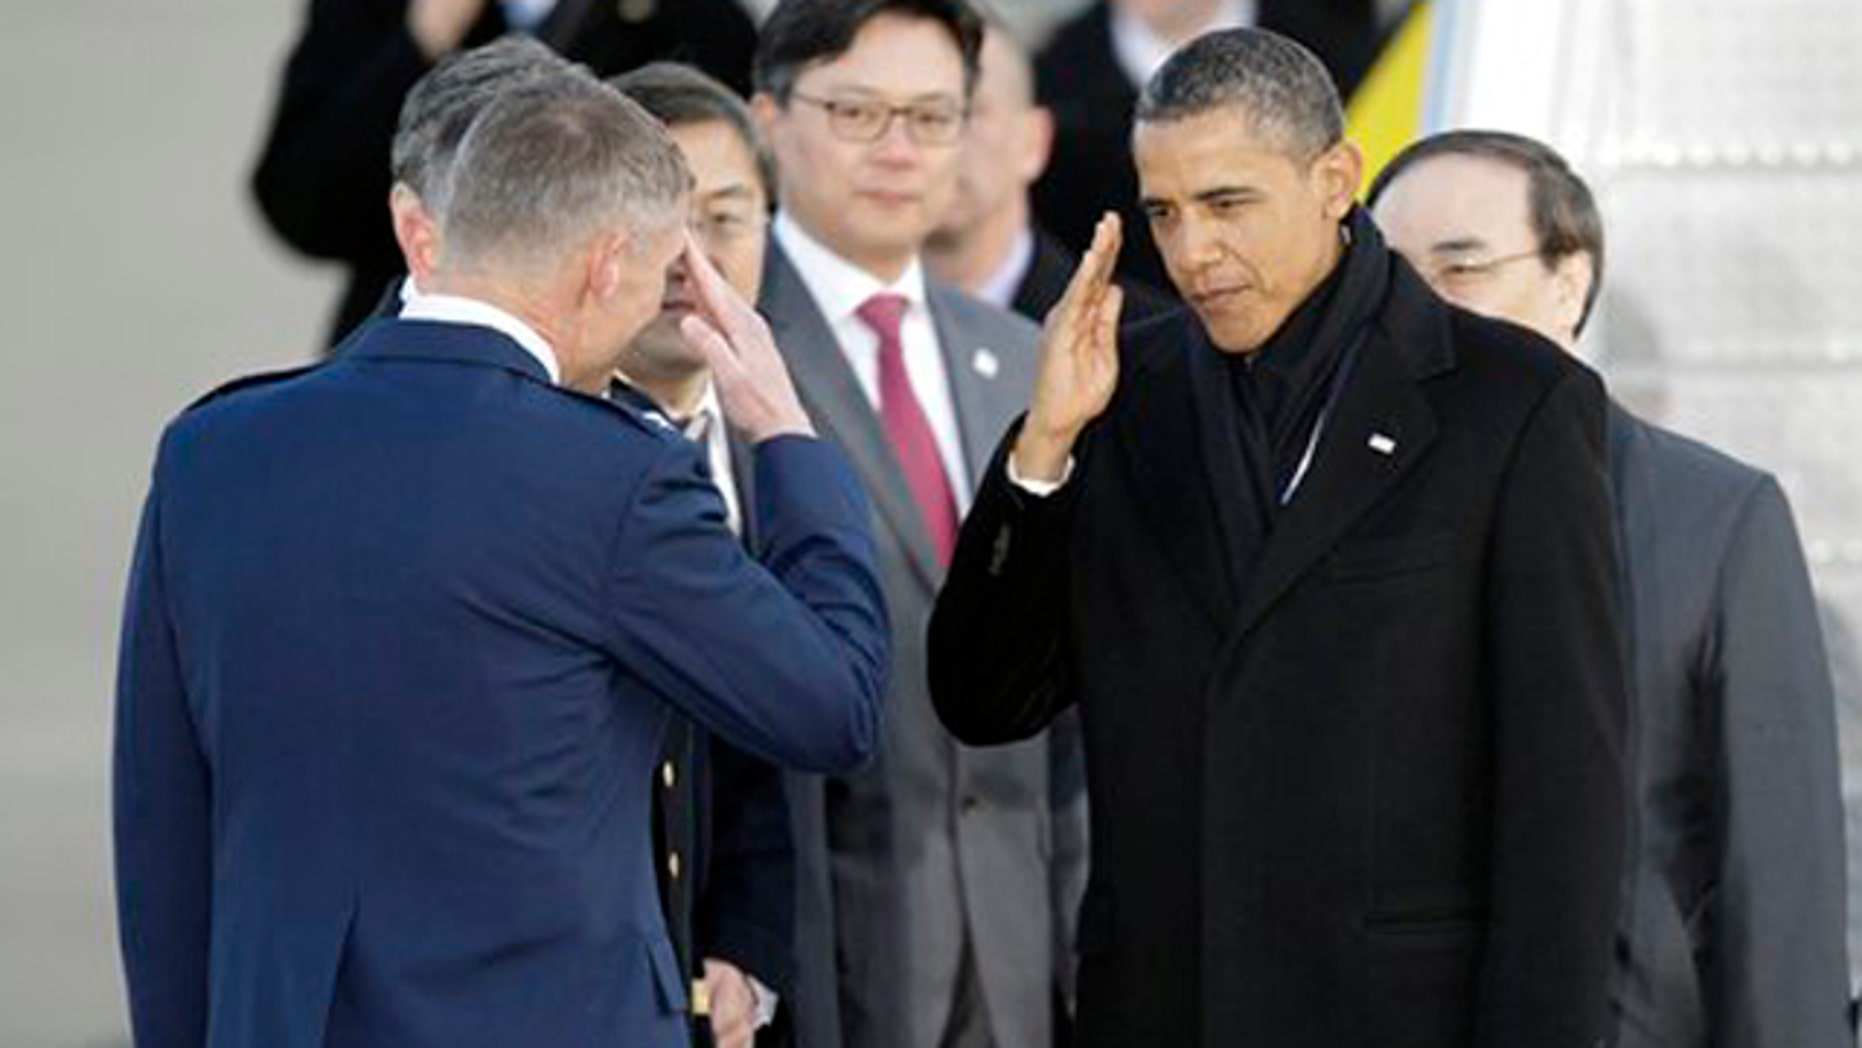 Mar. 25, 2012: President Barack Obama salutes upon arrival at Osan Air Base to attend the Nuclear Security Summit, in Osan, south of Seoul, South Korea.